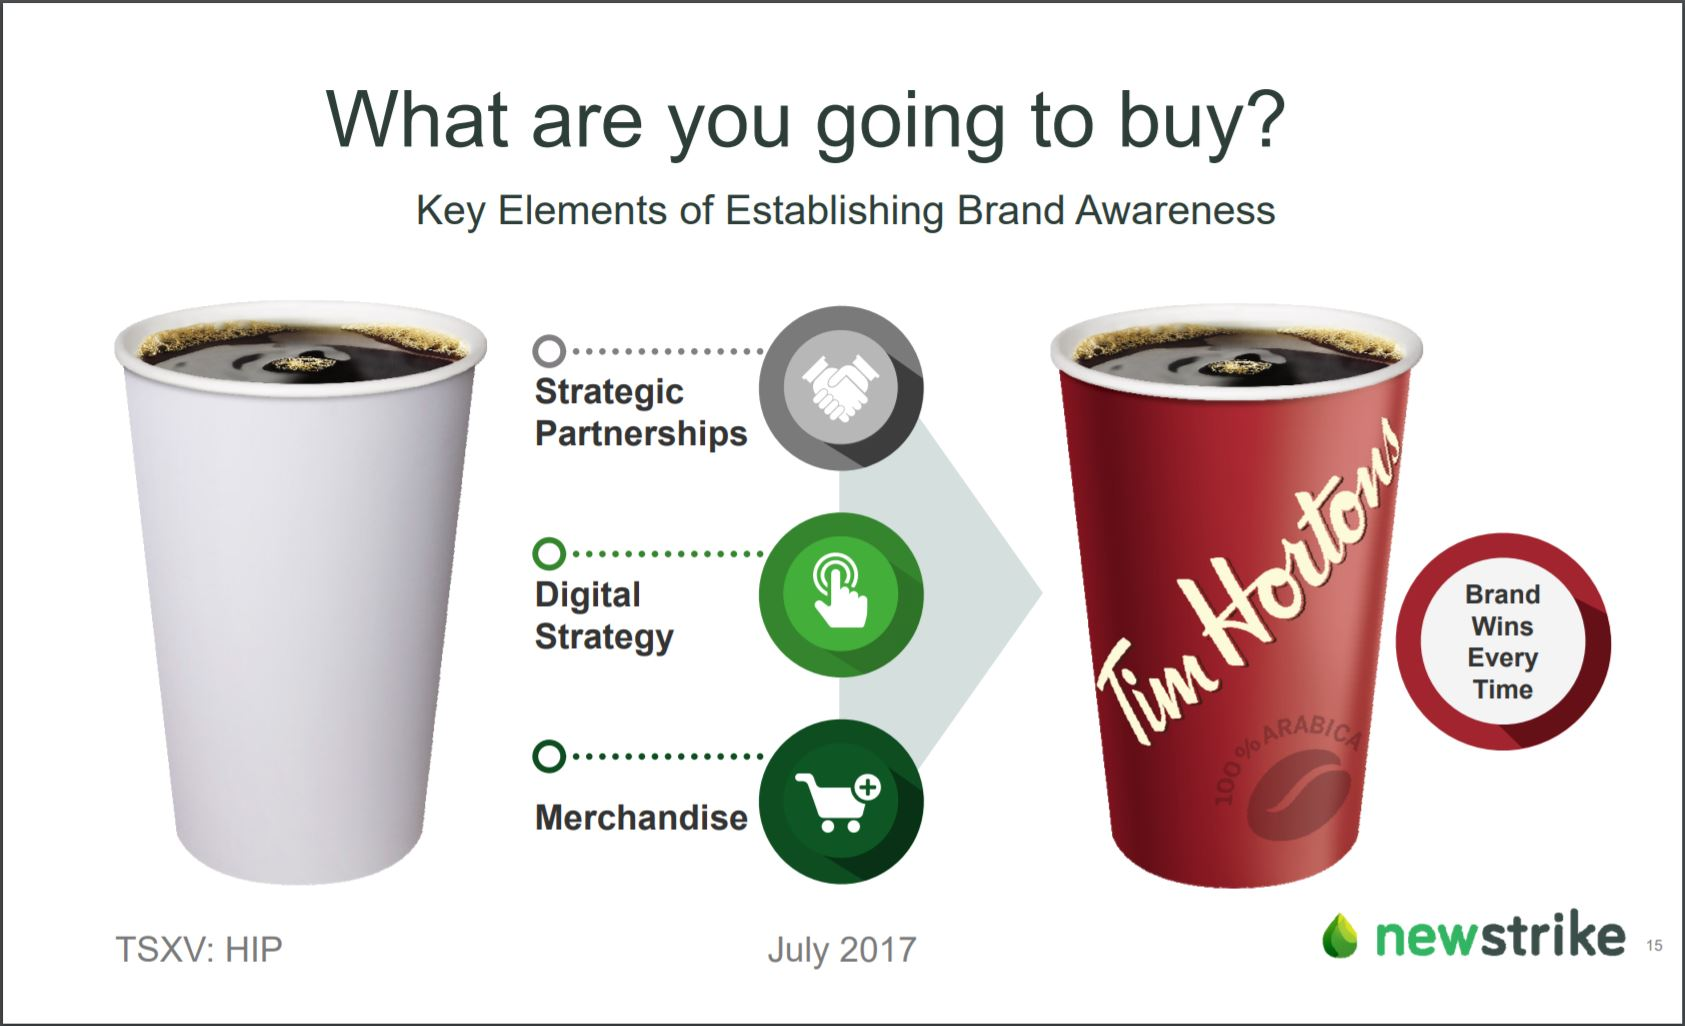 Newstrike Resources focus on branding is demonstrated on this snippet from slide 15 of the investor presentation.